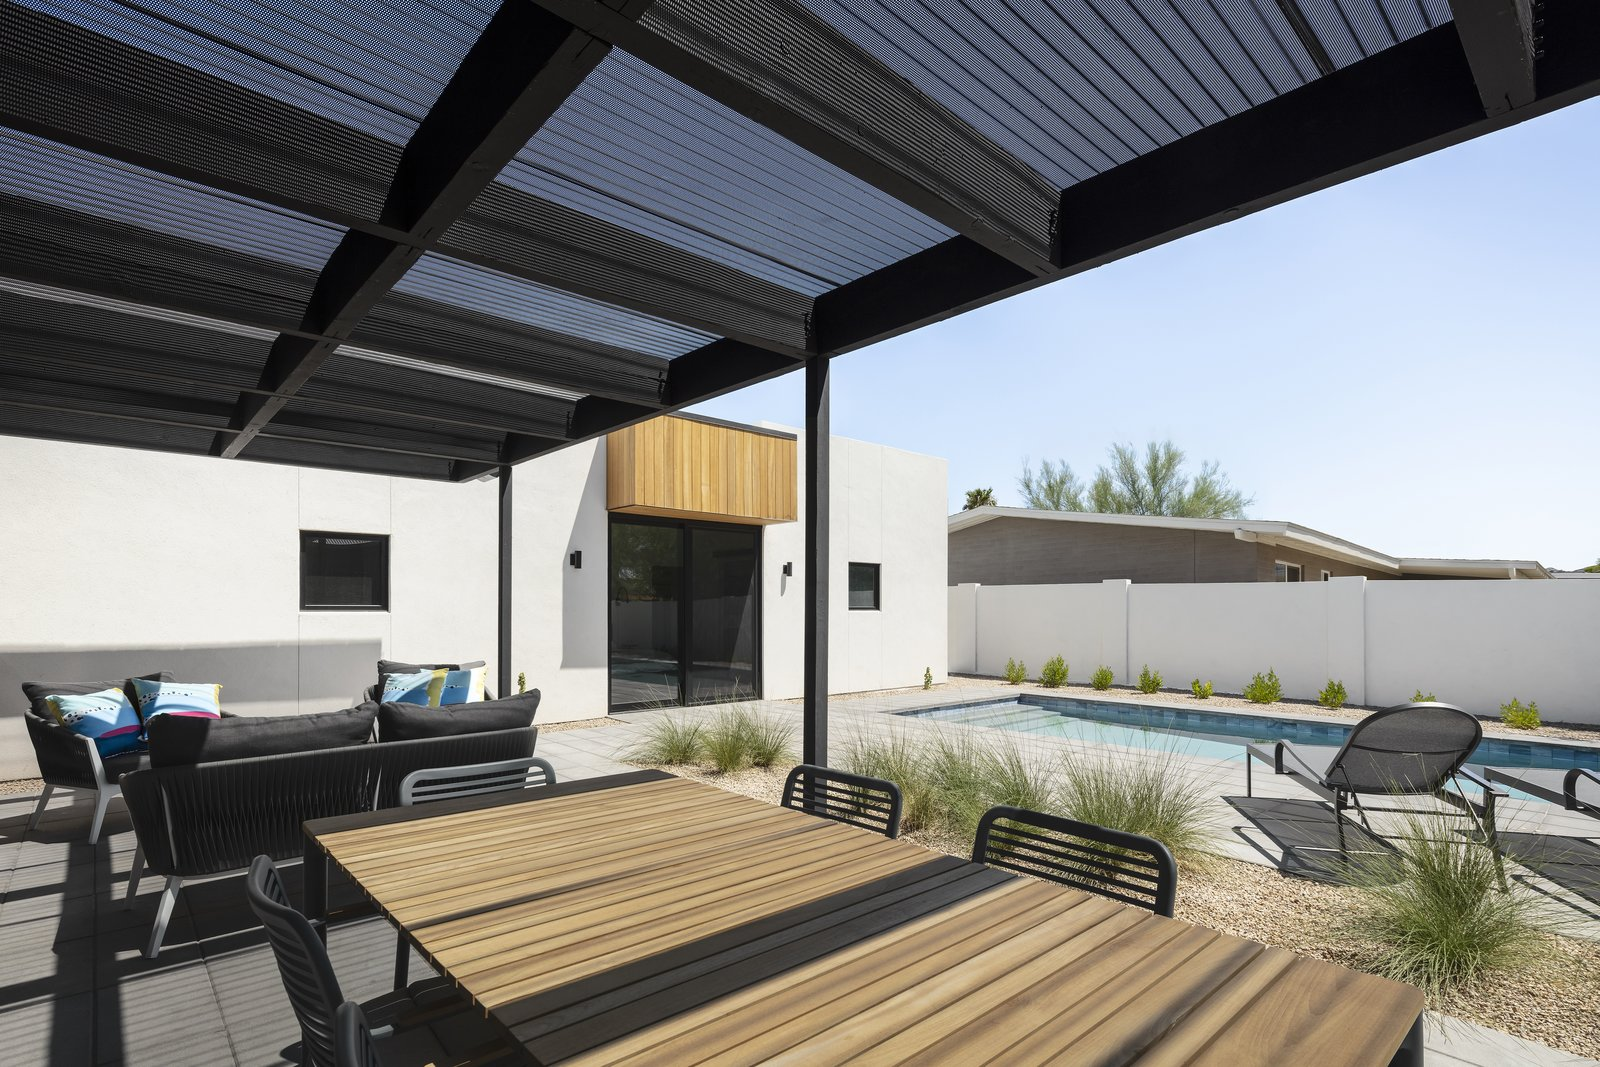 Outdoor, Hardscapes, Small Patio, Porch, Deck, Desert, Small Pools, Tubs, Shower, Pavers Patio, Porch, Deck, and Back Yard A perforated, corrugated metal patio cover provides a transition between the bright desert sun, and the shaded interior of the house  Photos from Pleats